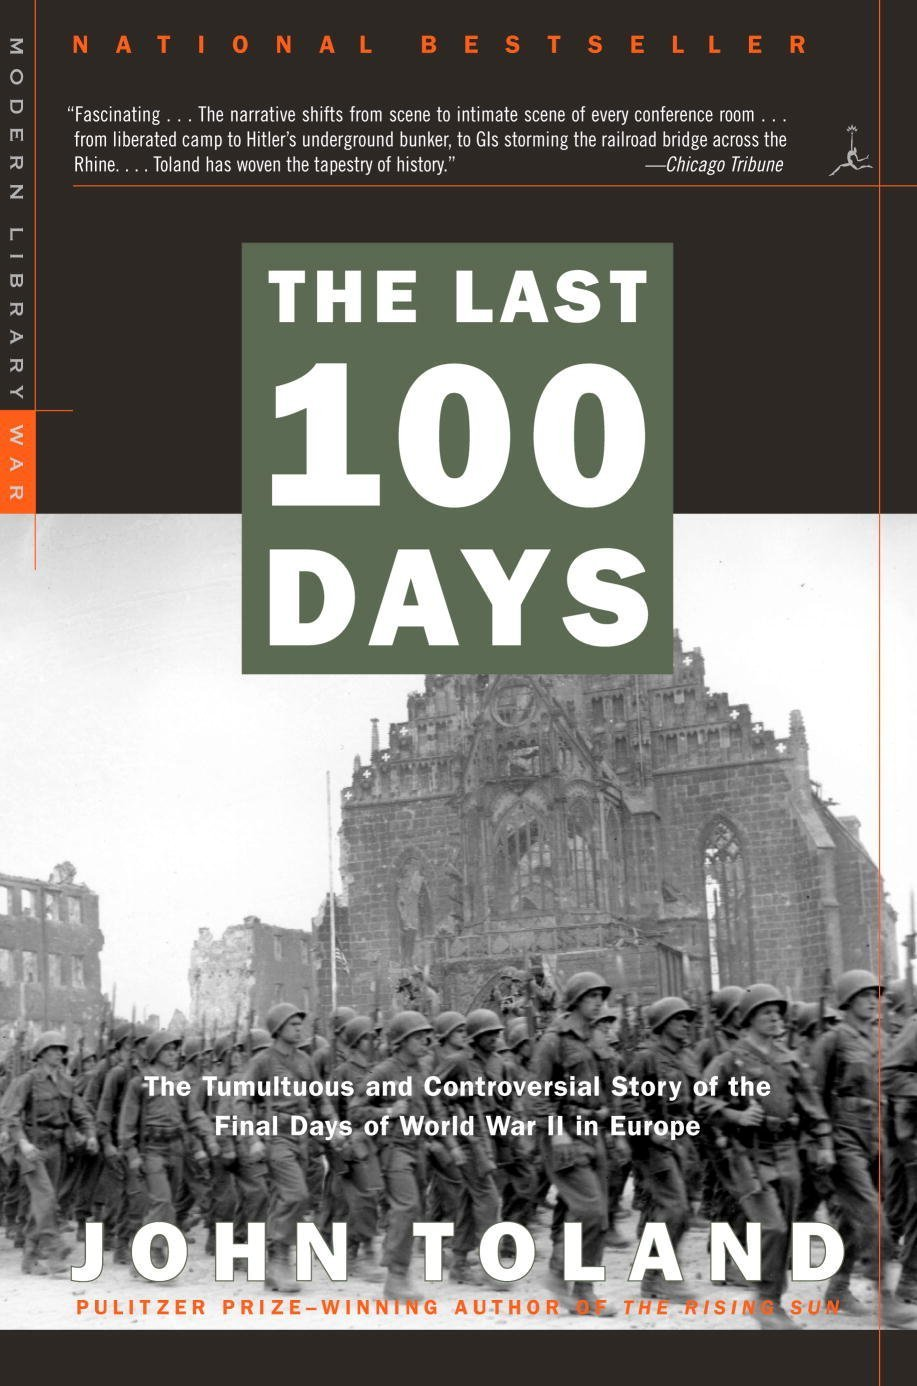 The Last 100 Days: The Tumultuous and Controversial Story of the Final Days of World War II in Europe (Modern Library War) free download